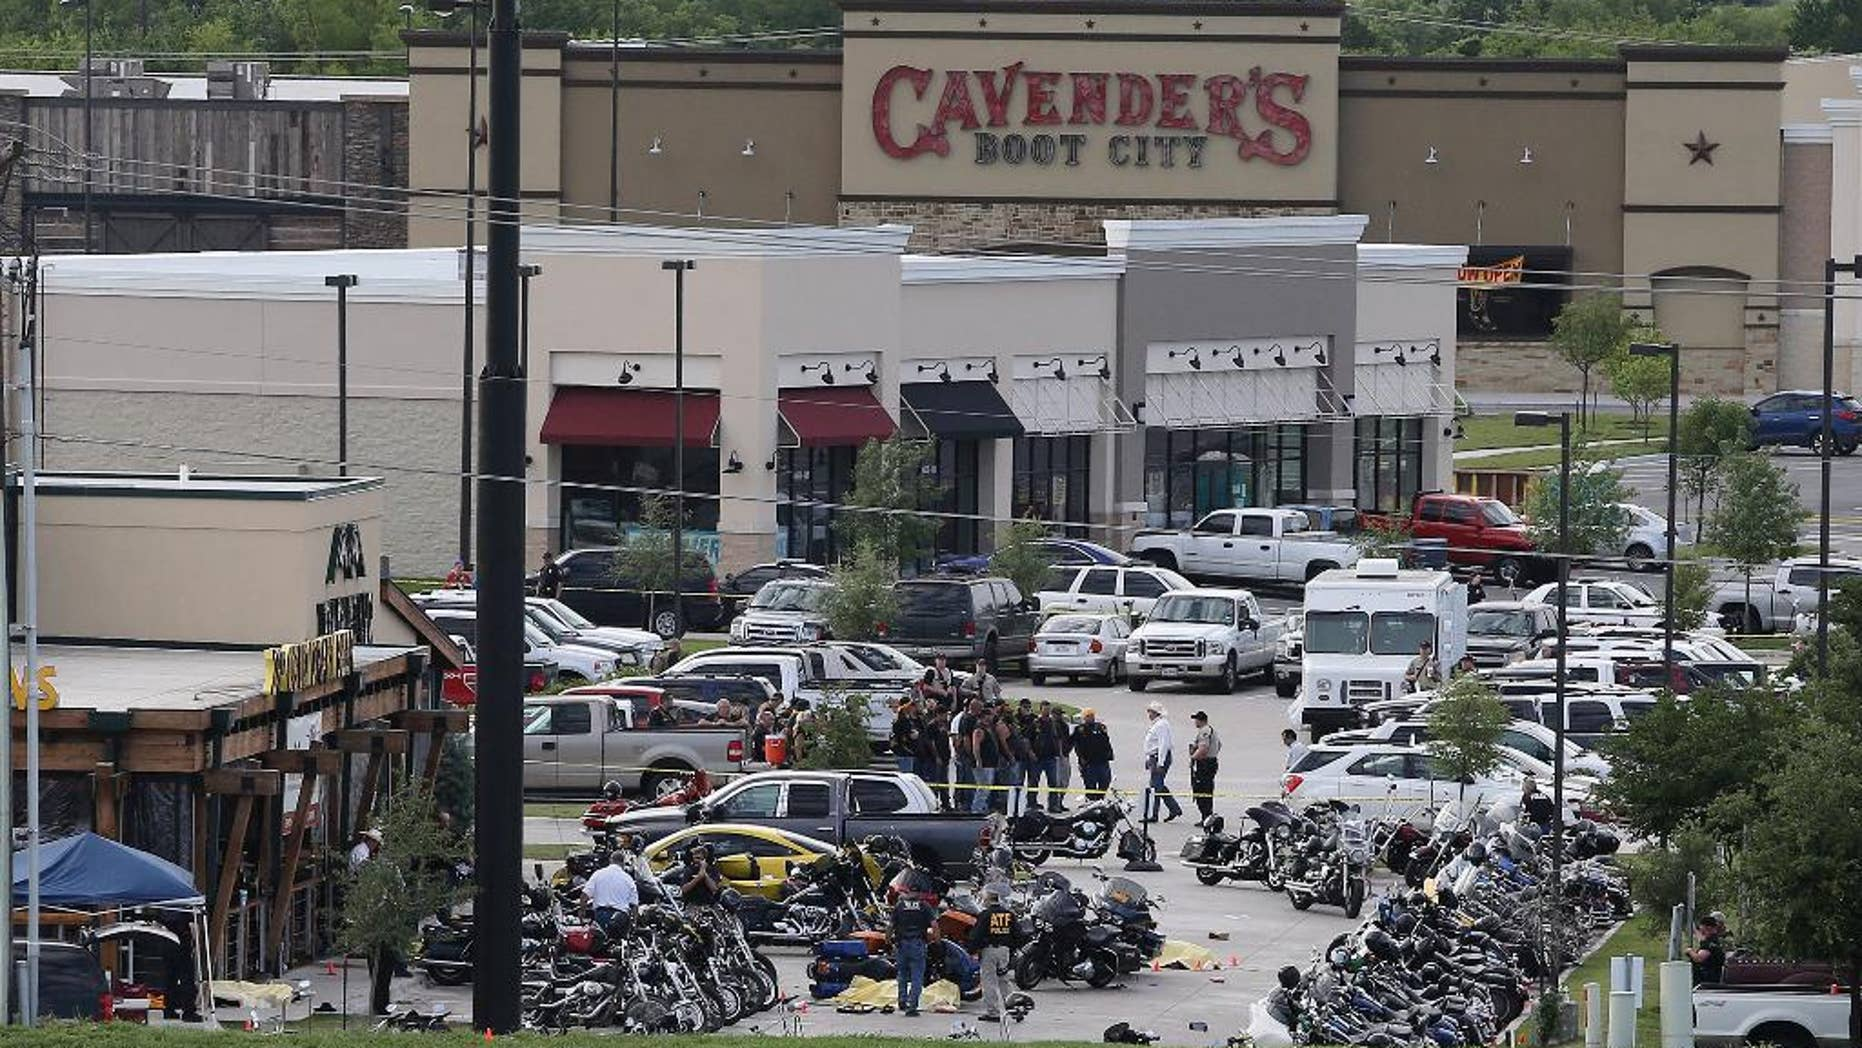 FILE - In this May 17, 2015 file photo, authorities investigate a shooting in the parking lot of Twin Peaks restaurant in Waco, Texas. The family of a biker slain in a shootout outside the Waco restaurant has sued the restaurant's parent company alleging negligence, according to a lawsuit filed Wednesday, July 8, 2015, in Dallas County.  (AP Photo/Jerry Larson, File)